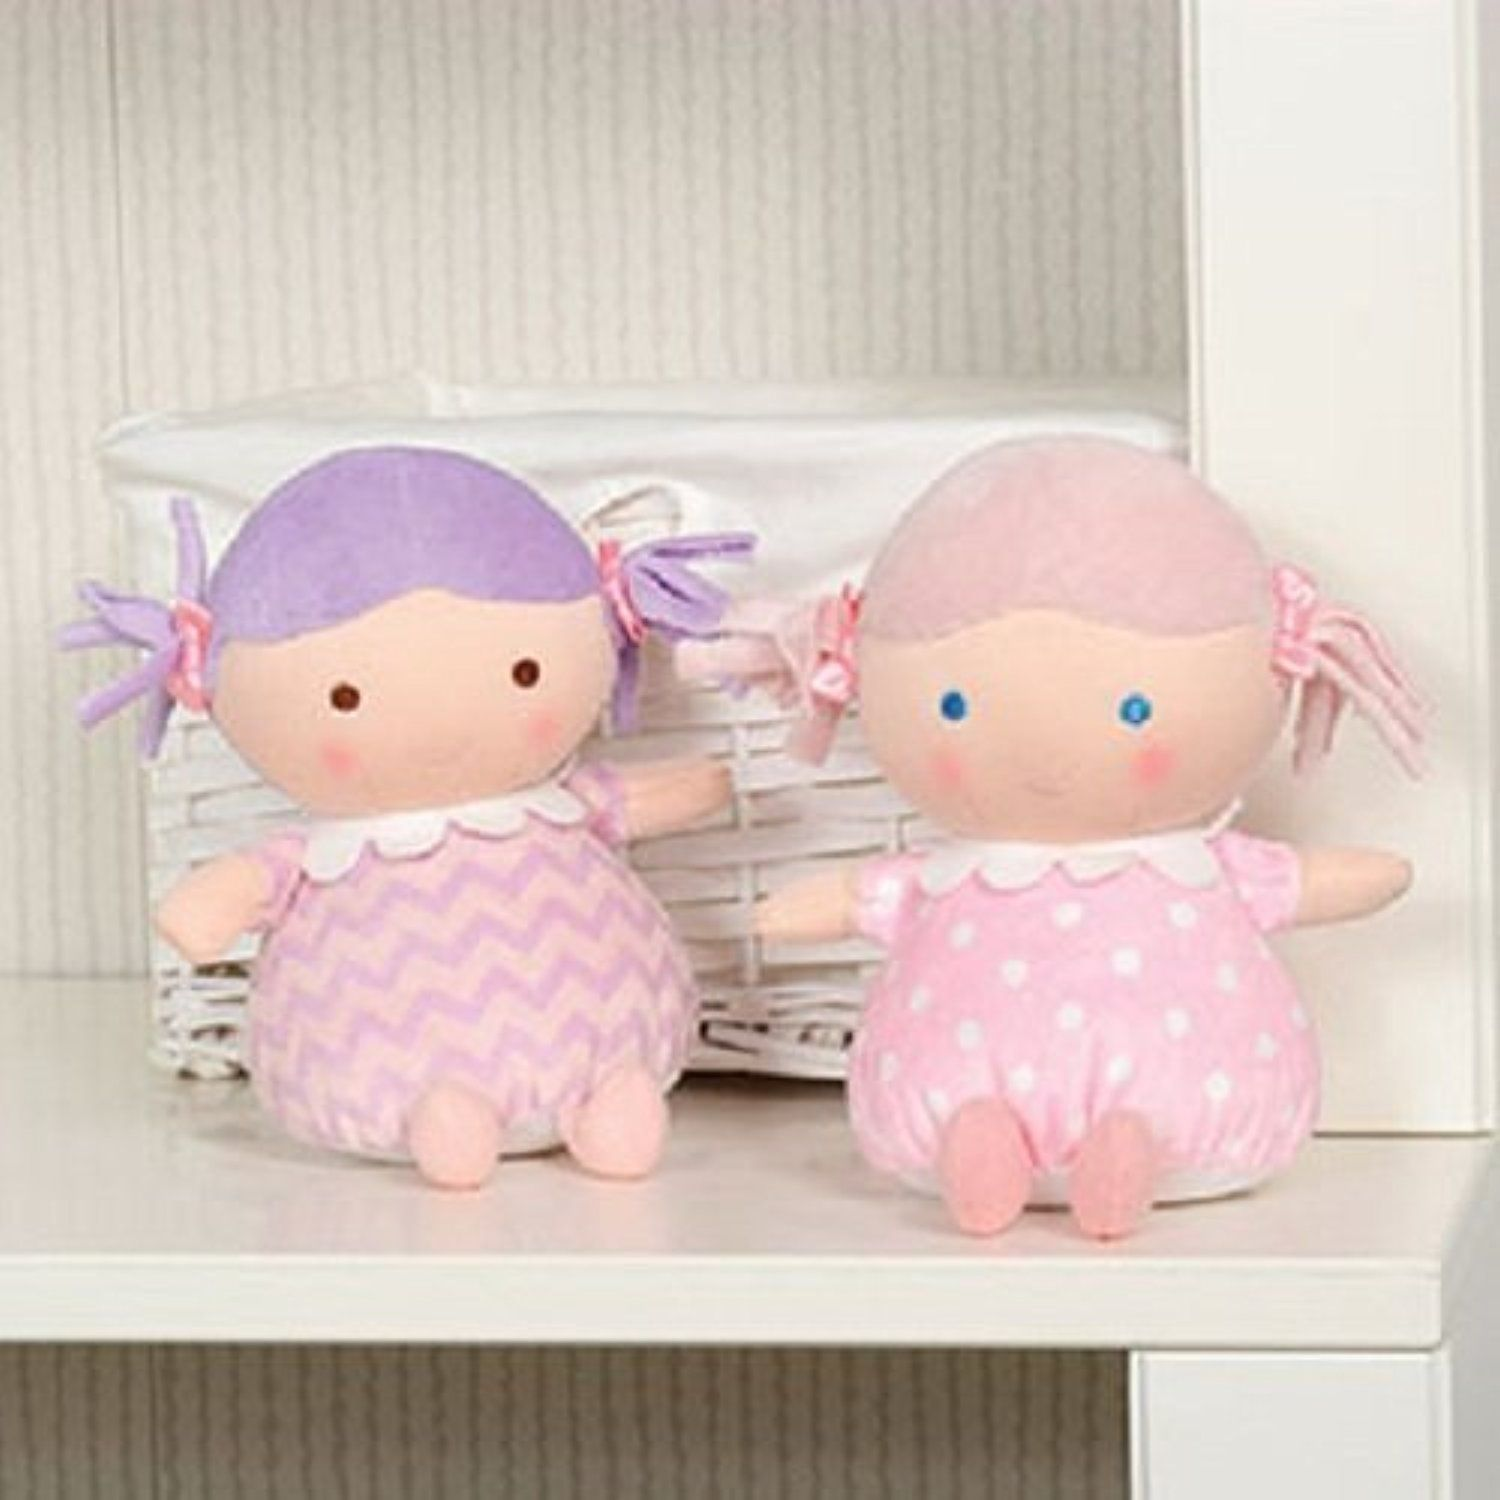 Doll toys images  Kids Preferred Giggle Dolls  Find out more about the great product